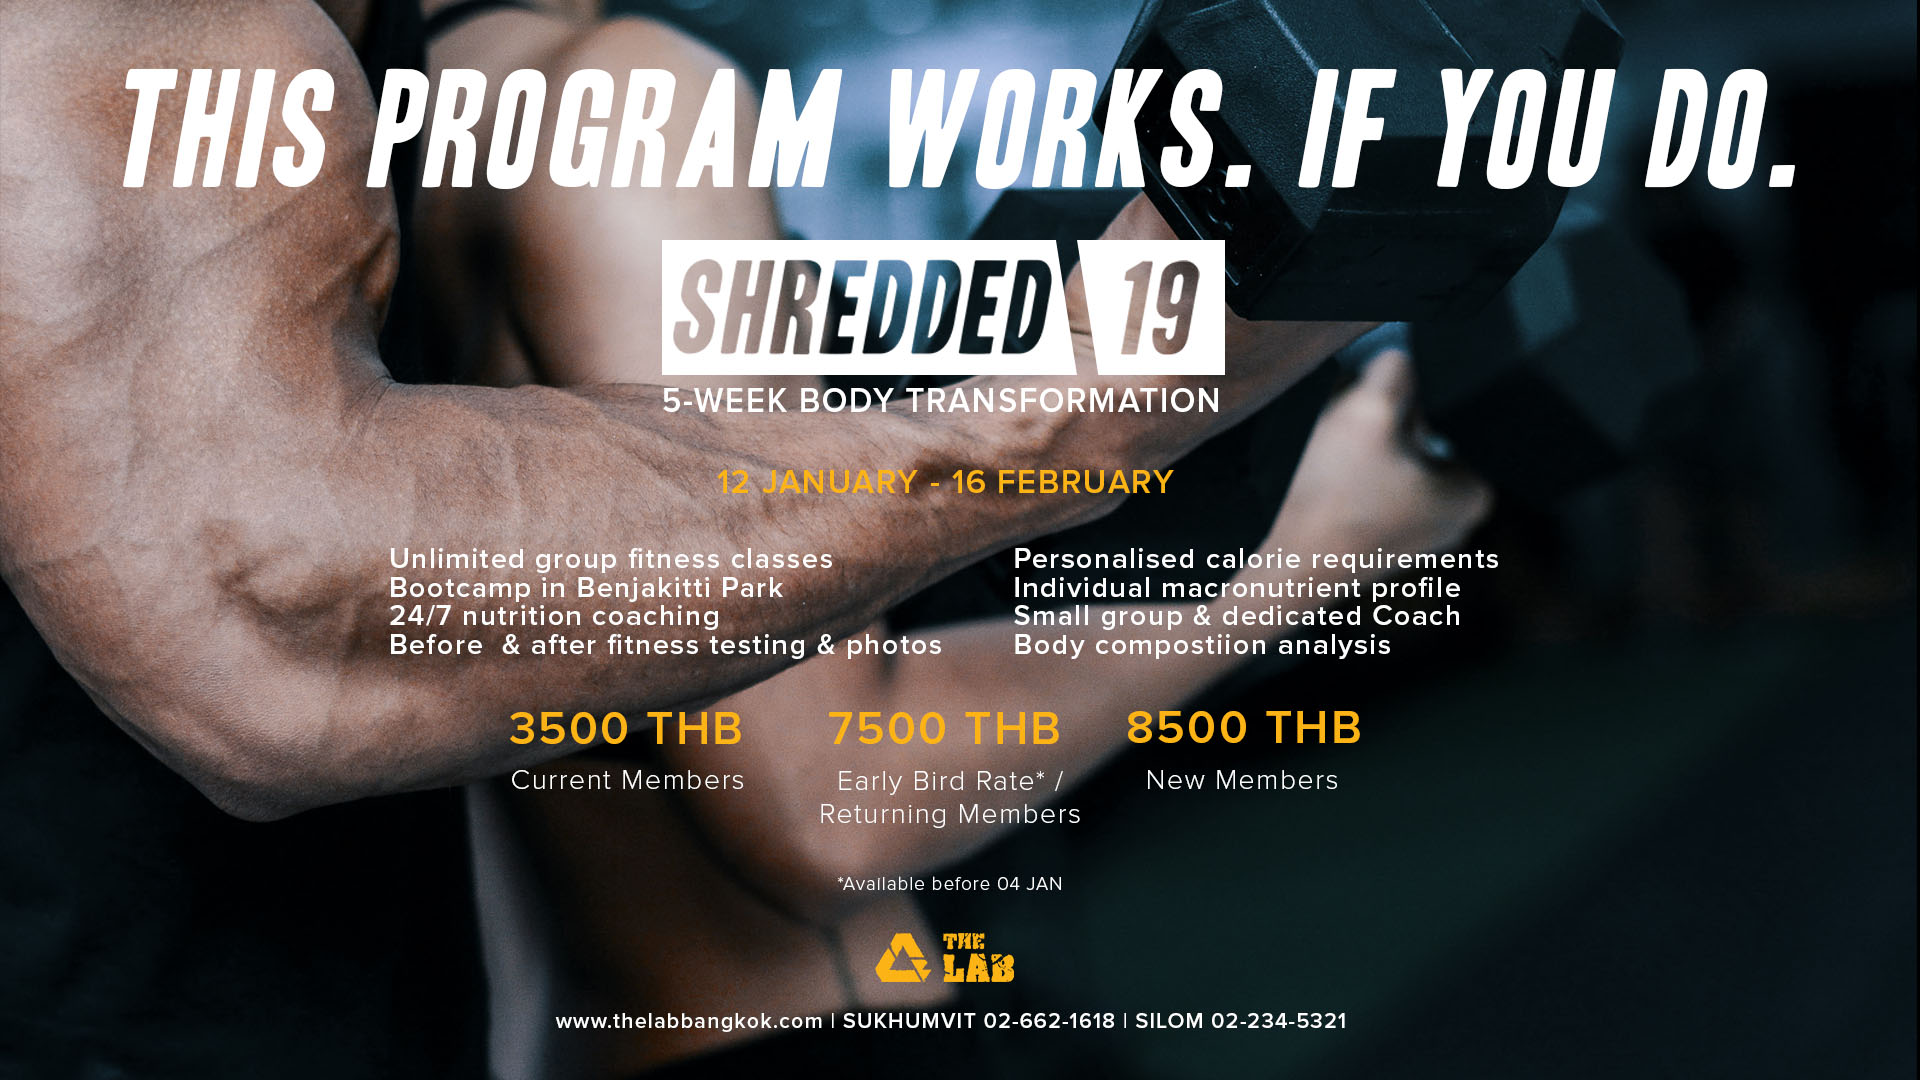 Shredded 19 Newsletter & Web_inclusions